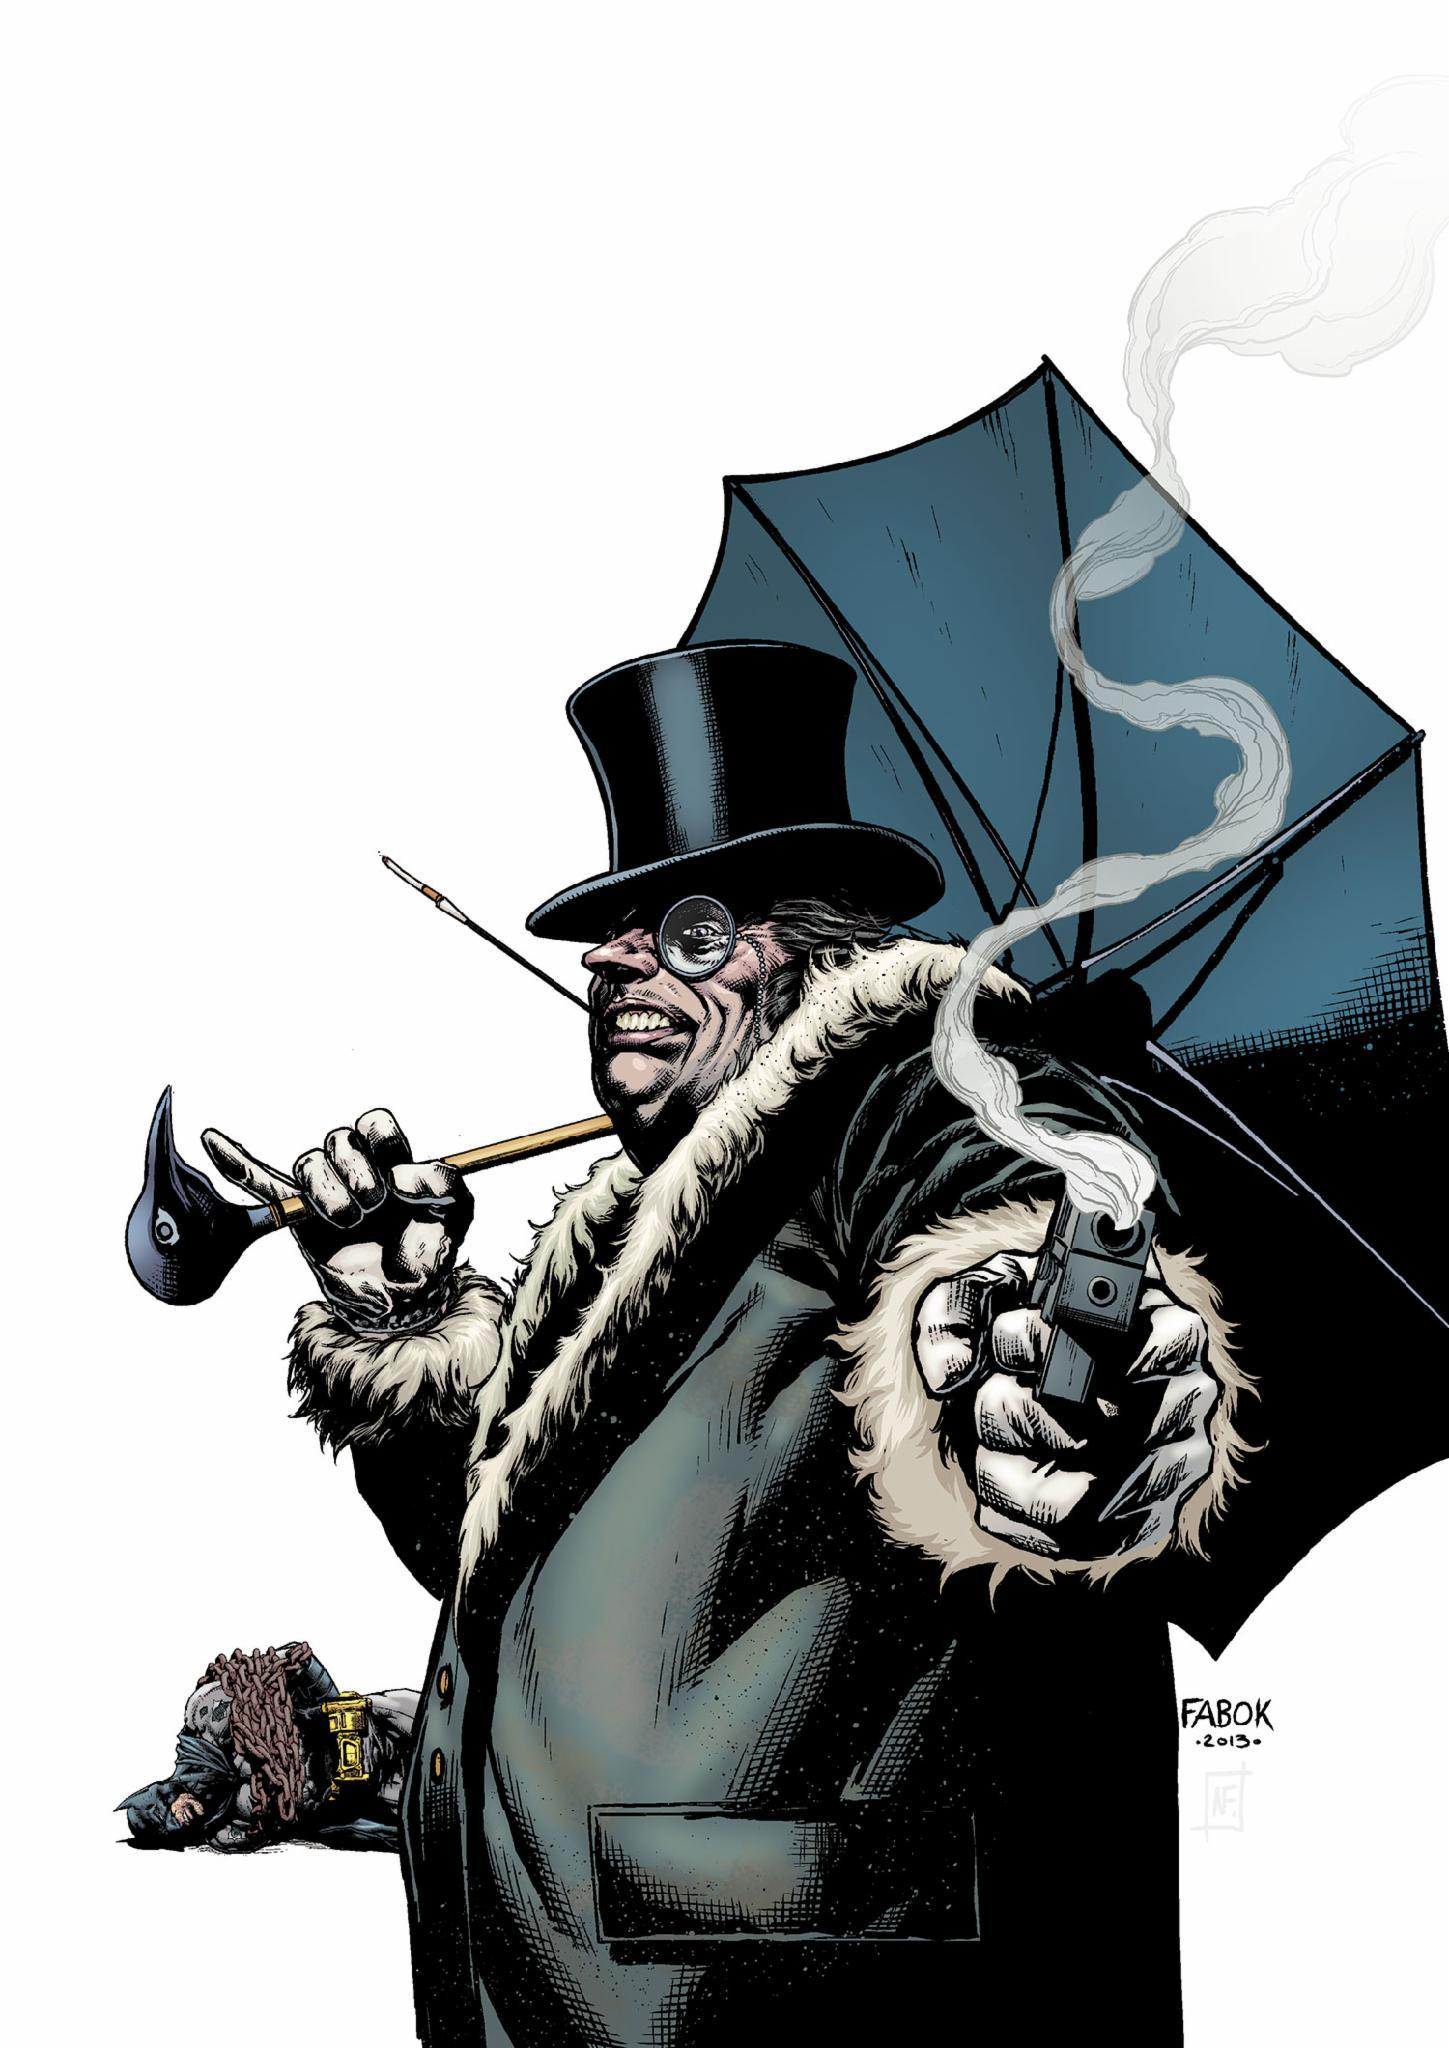 Now who the hell is this villain?He has an umbrella fetish.He is a rival against both Bruce Wayne and Batman.He doesn't know they're the same person though.